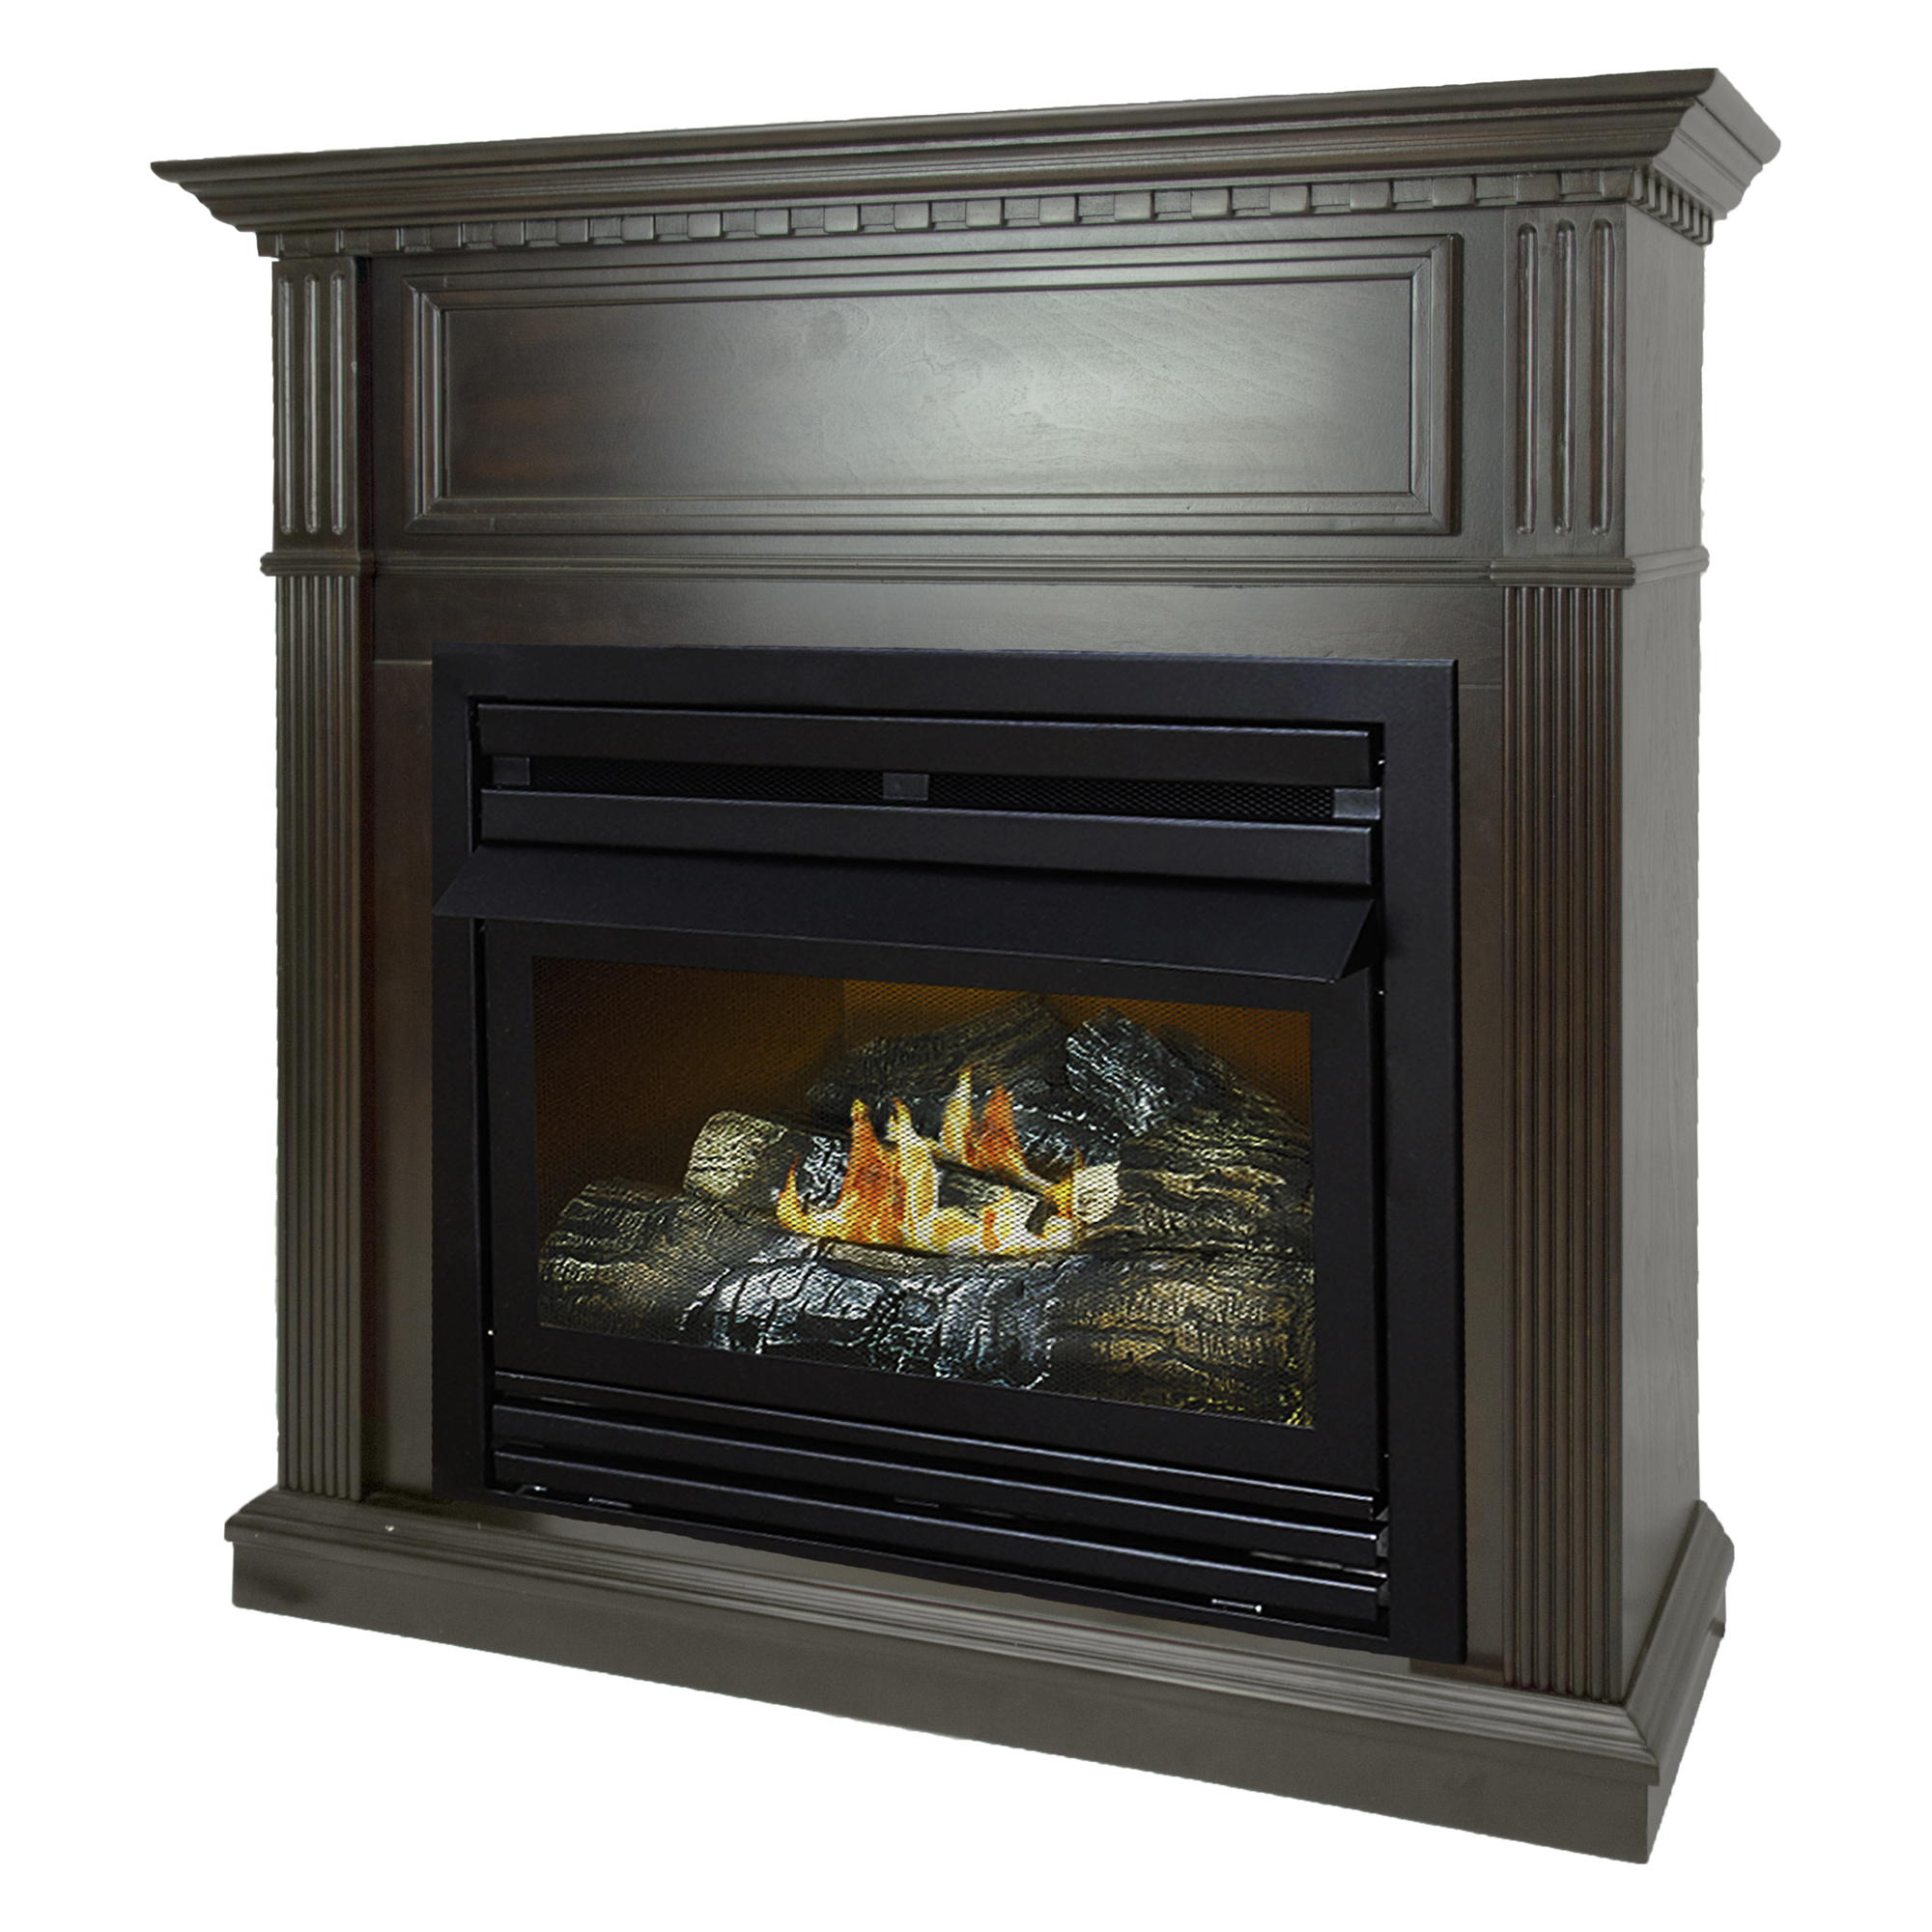 Pleasant Hearth 42 in. Liquid Propane Intermediate Tobacco Vent Free Fireplace System... by GHP Group, Inc.